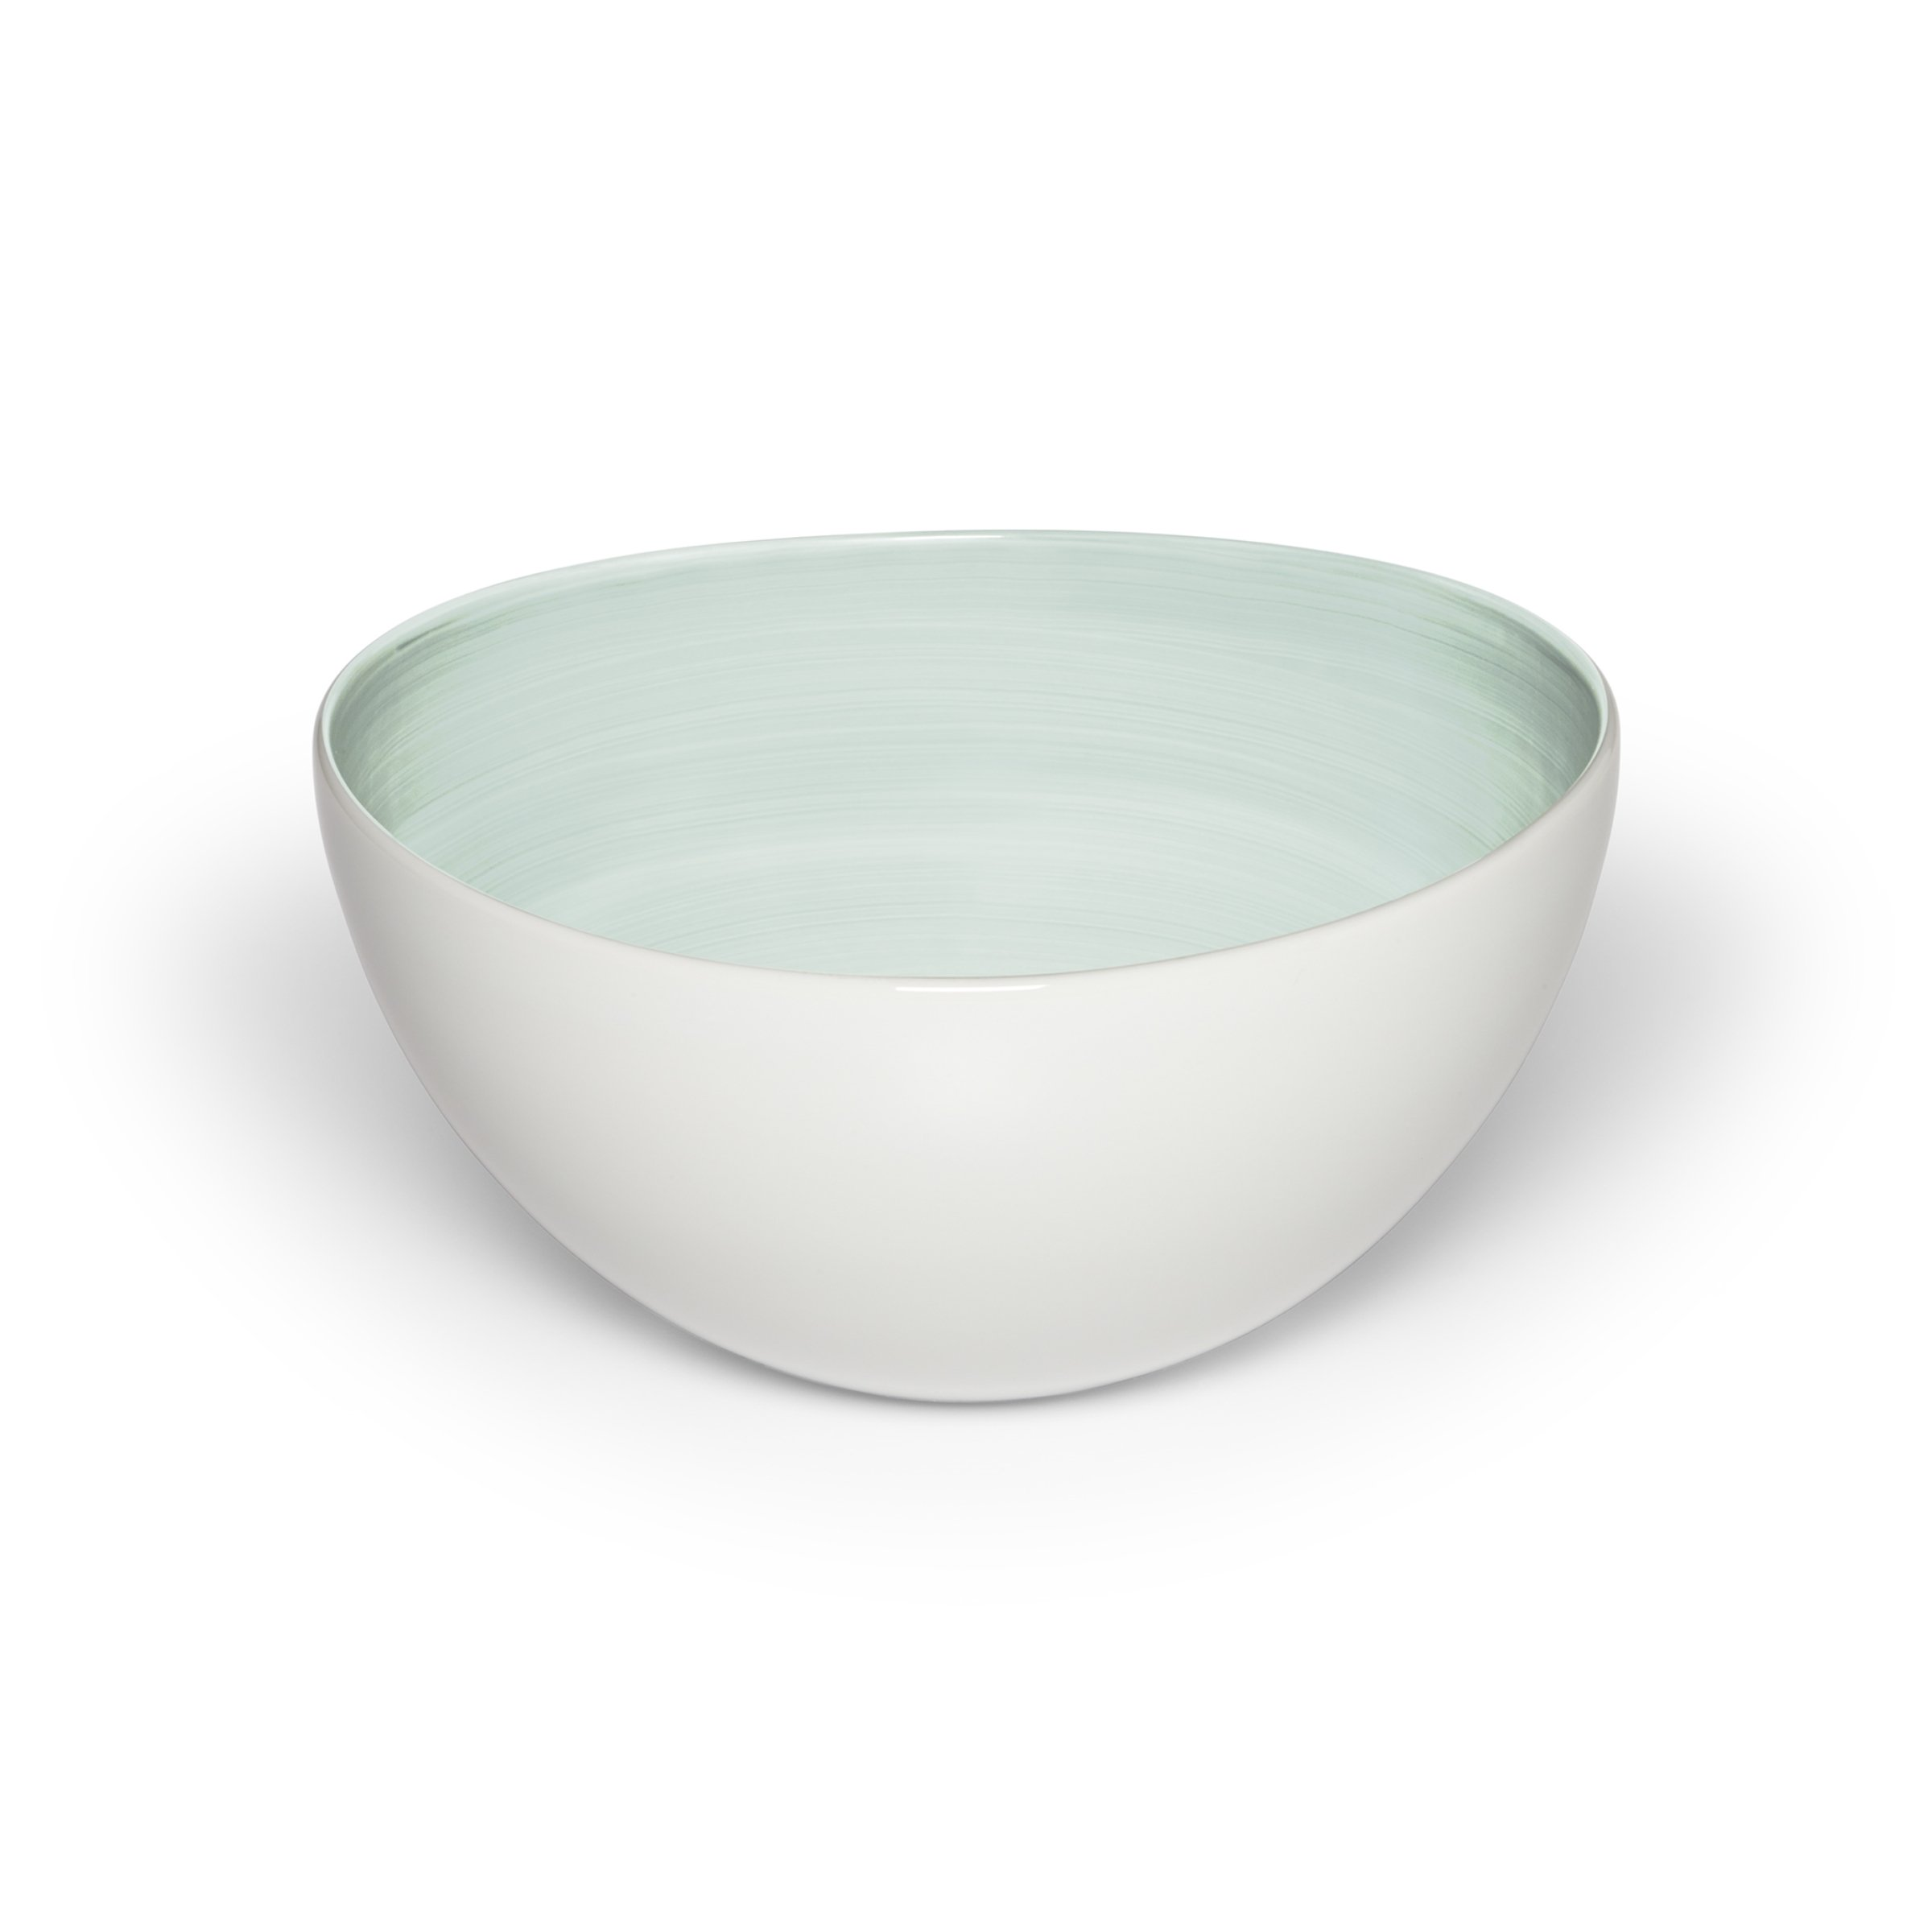 Mikasa Savona Teal Vegetable Bowl, 9-Inch